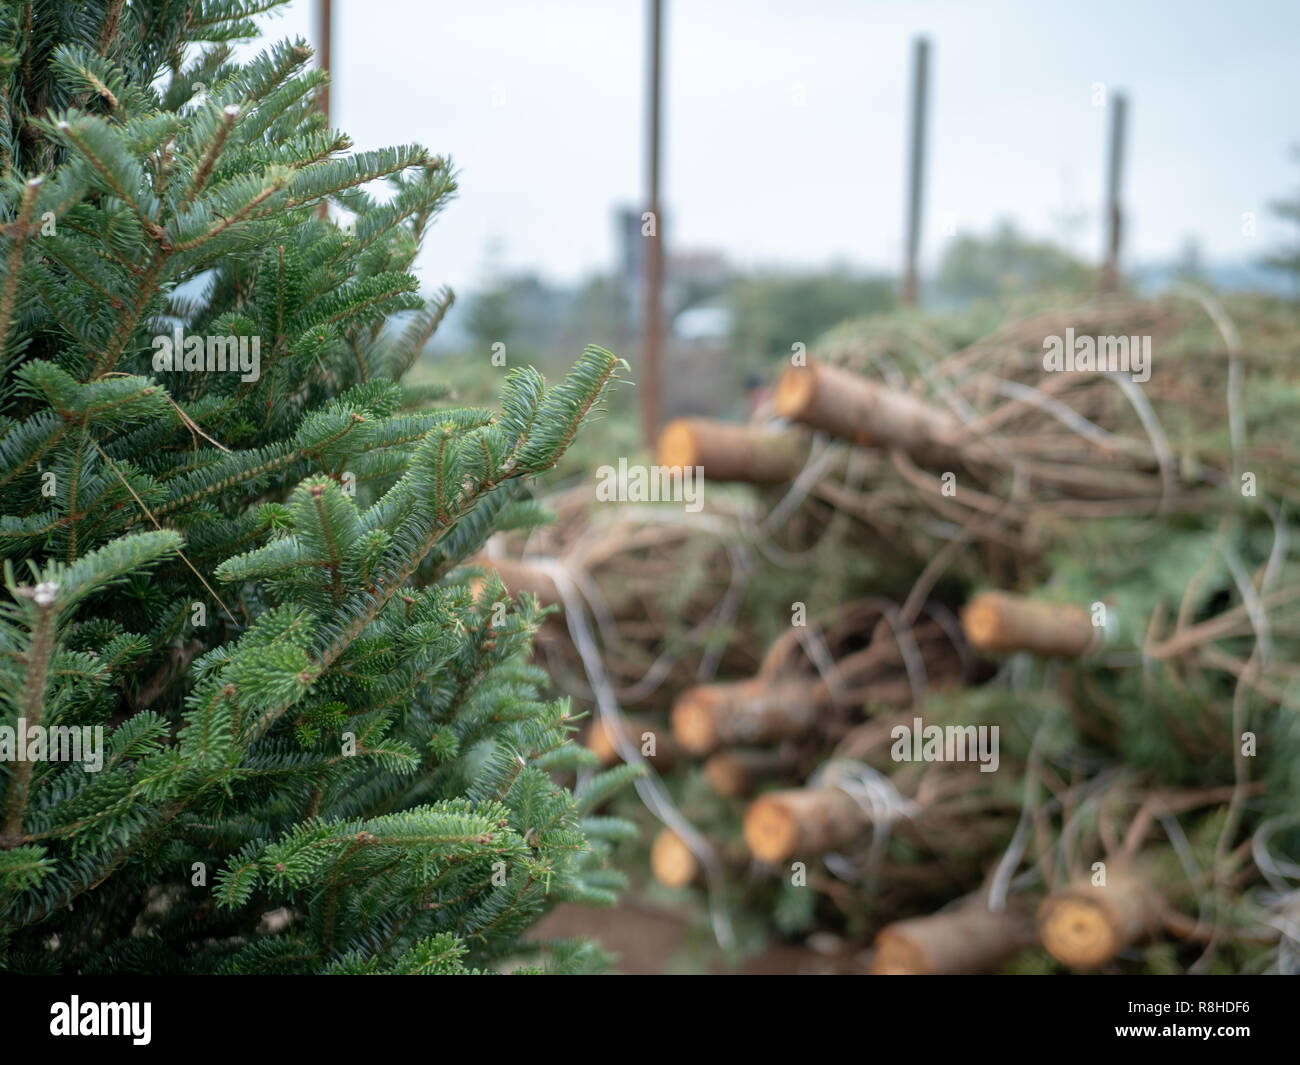 Stack of medium sized douglas fir Christmas trees cut down and sawed on a flatbed truck at market - Stock Image